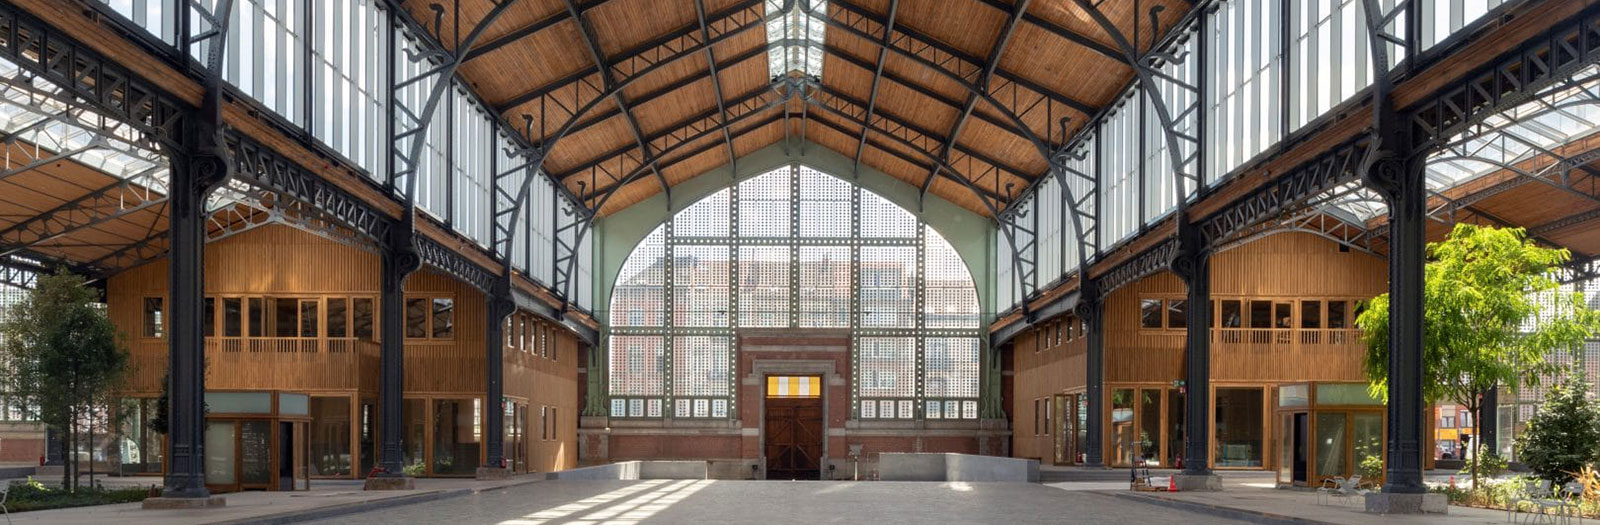 photo of interior of the Gare Maritime building in Brussels